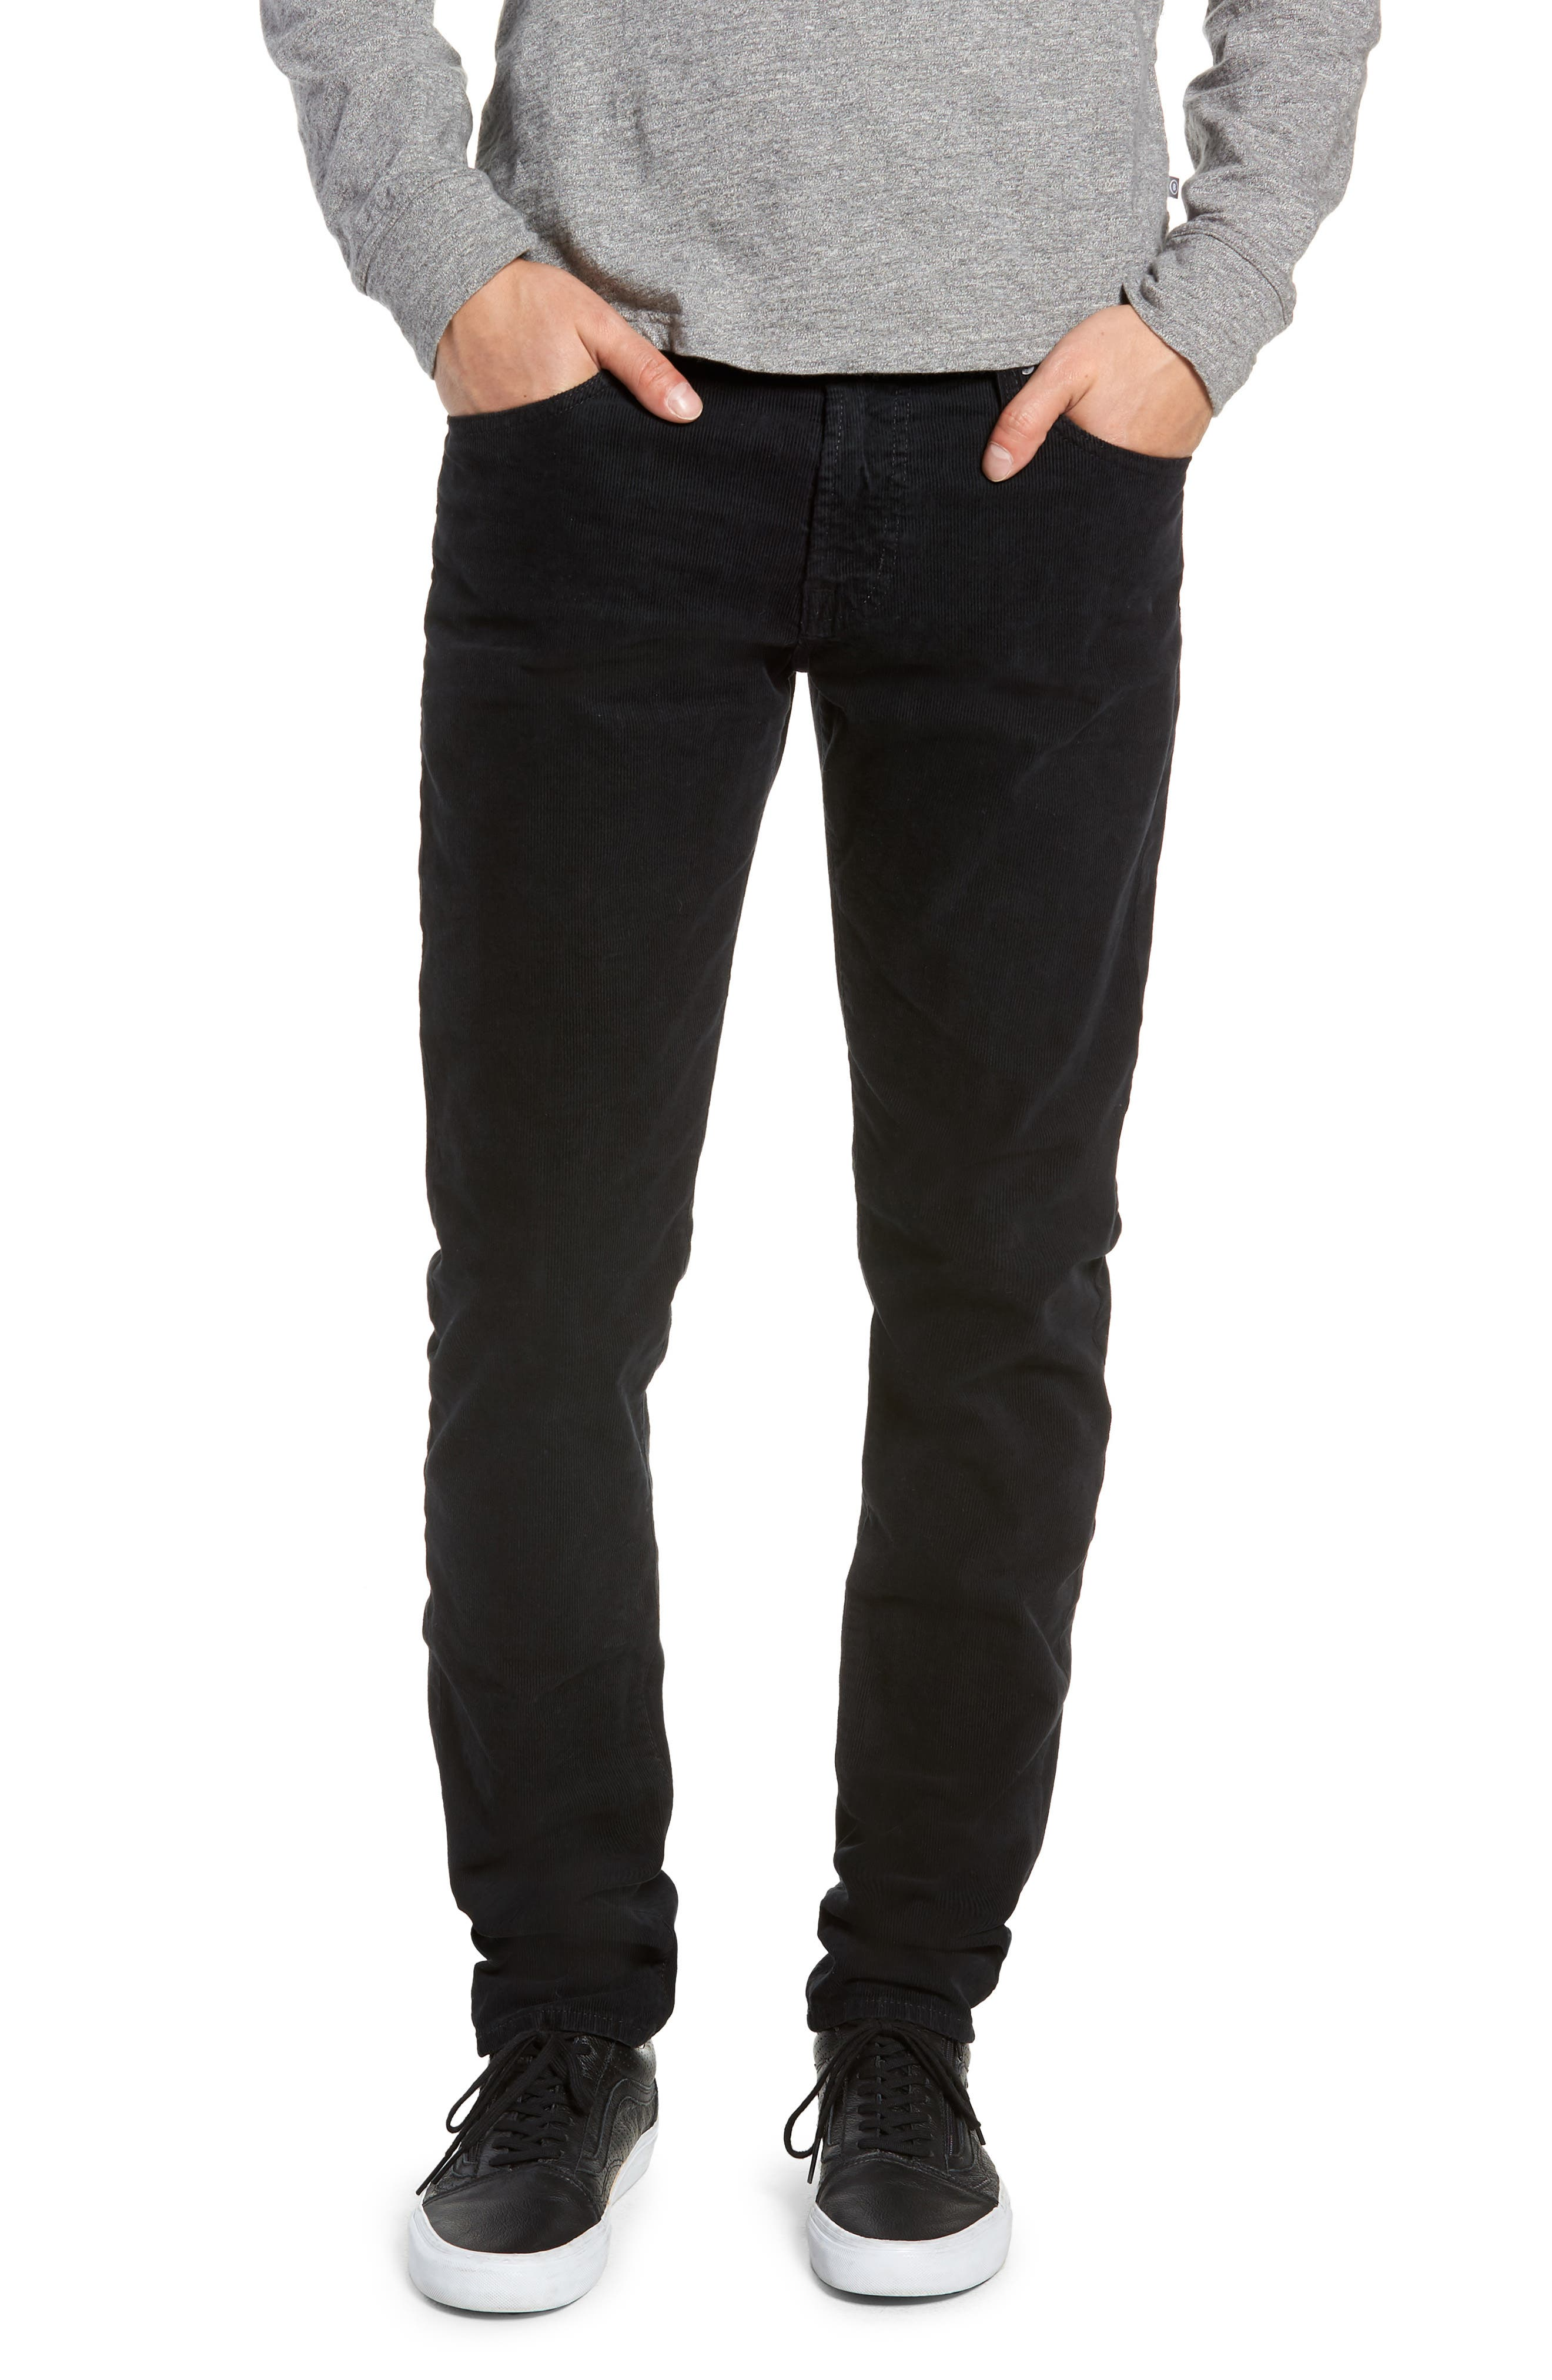 Dylan Skinny Fit Corduroy Pants,                             Main thumbnail 1, color,                             SULFUR ASH BLACK